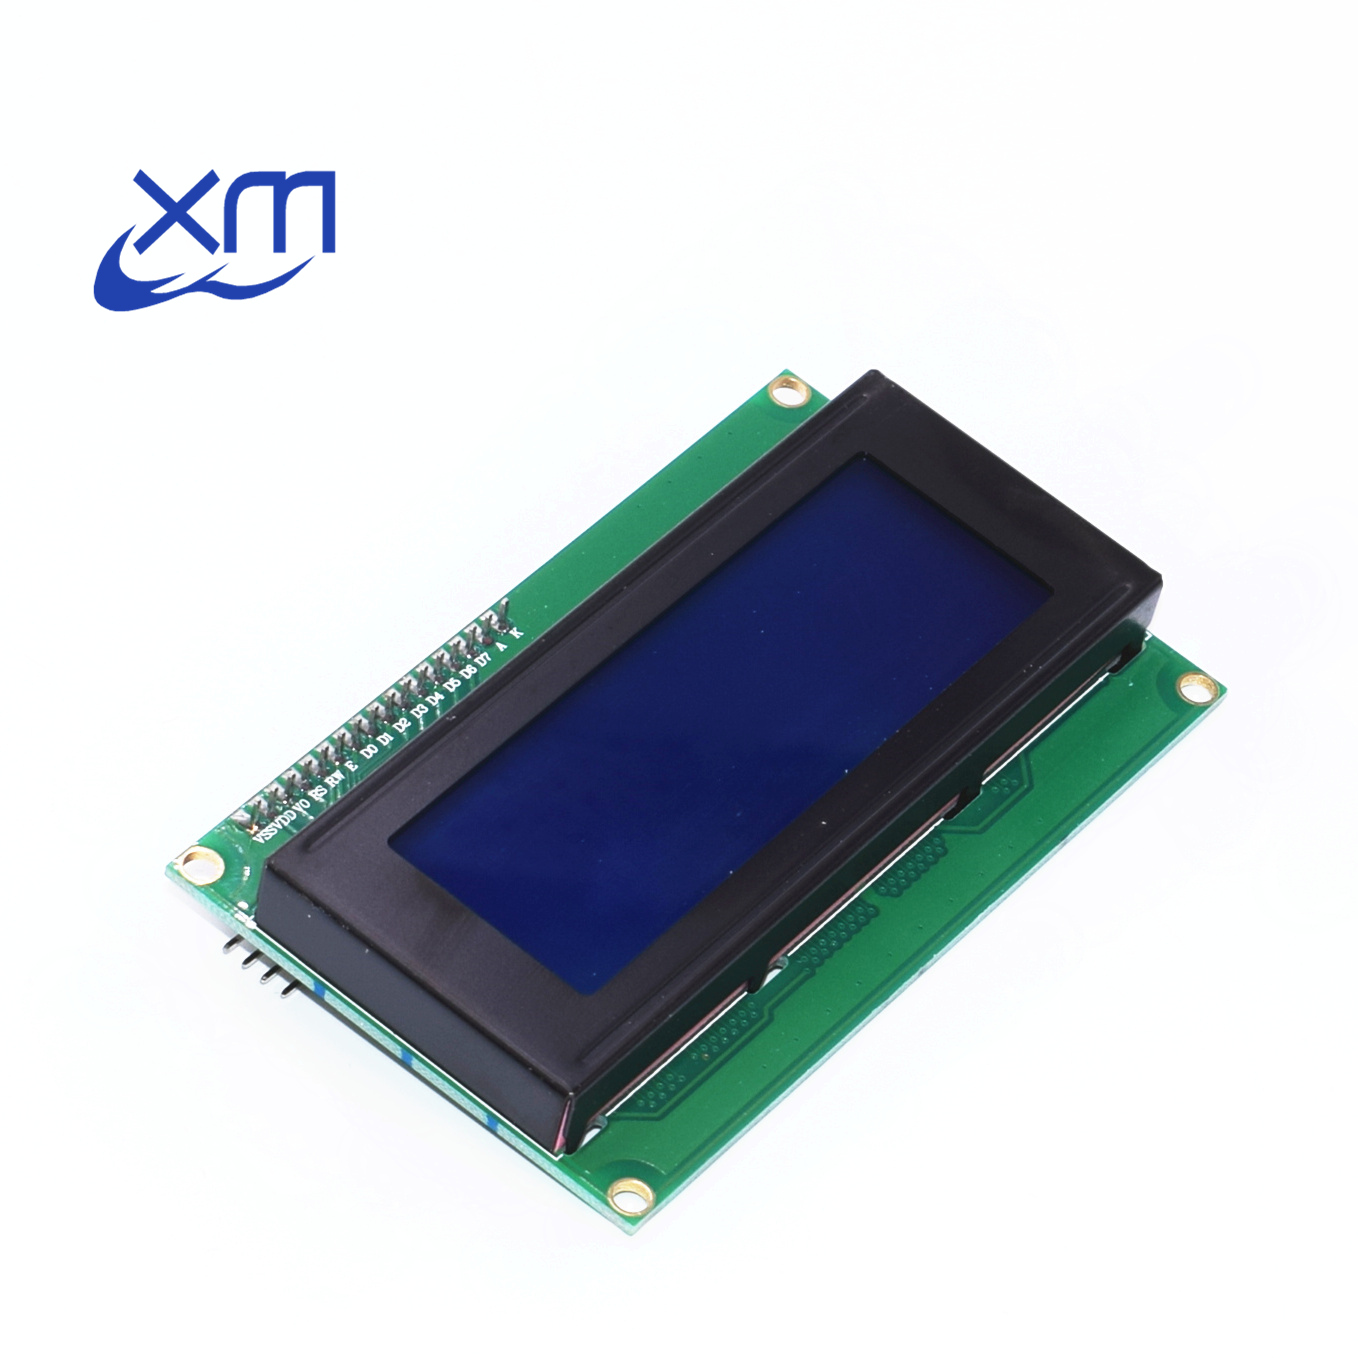 Special Promotions !!!! Lcd 20x4 LCD Module Blue Screen IIC/I2C 2004 5V LCD Blue Screen Provides Library Files 10pcs C13